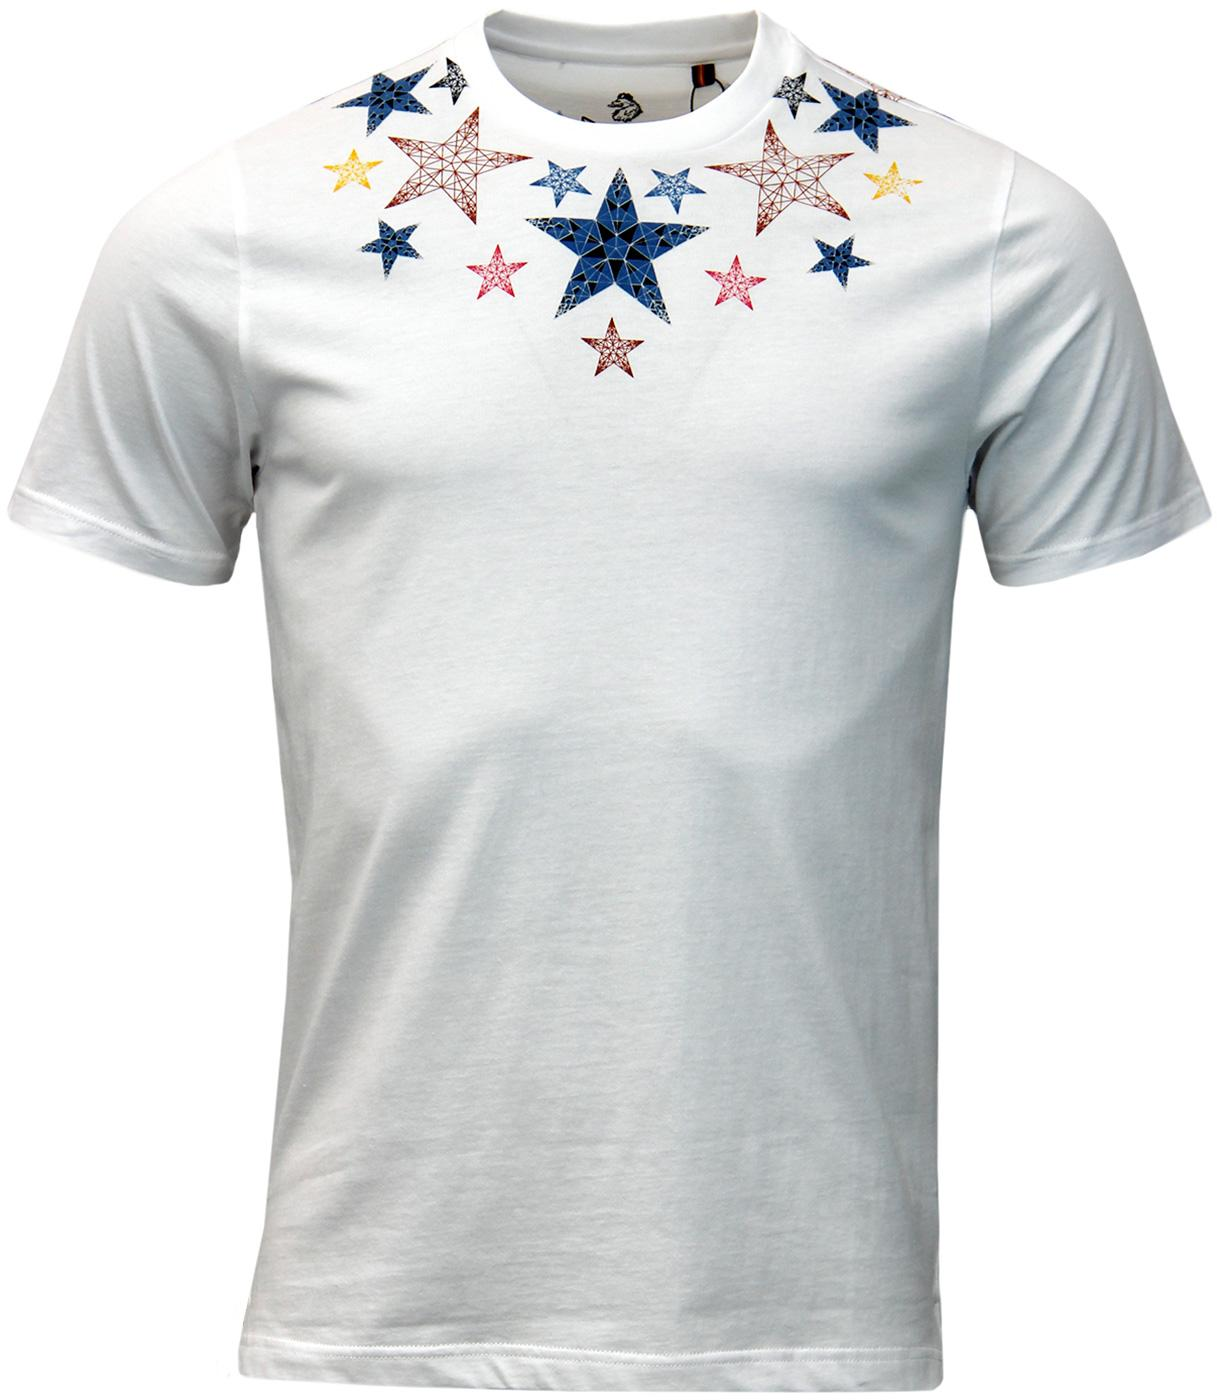 Half Uncle LUKE 1977 Retro Psychedelic Star Tee